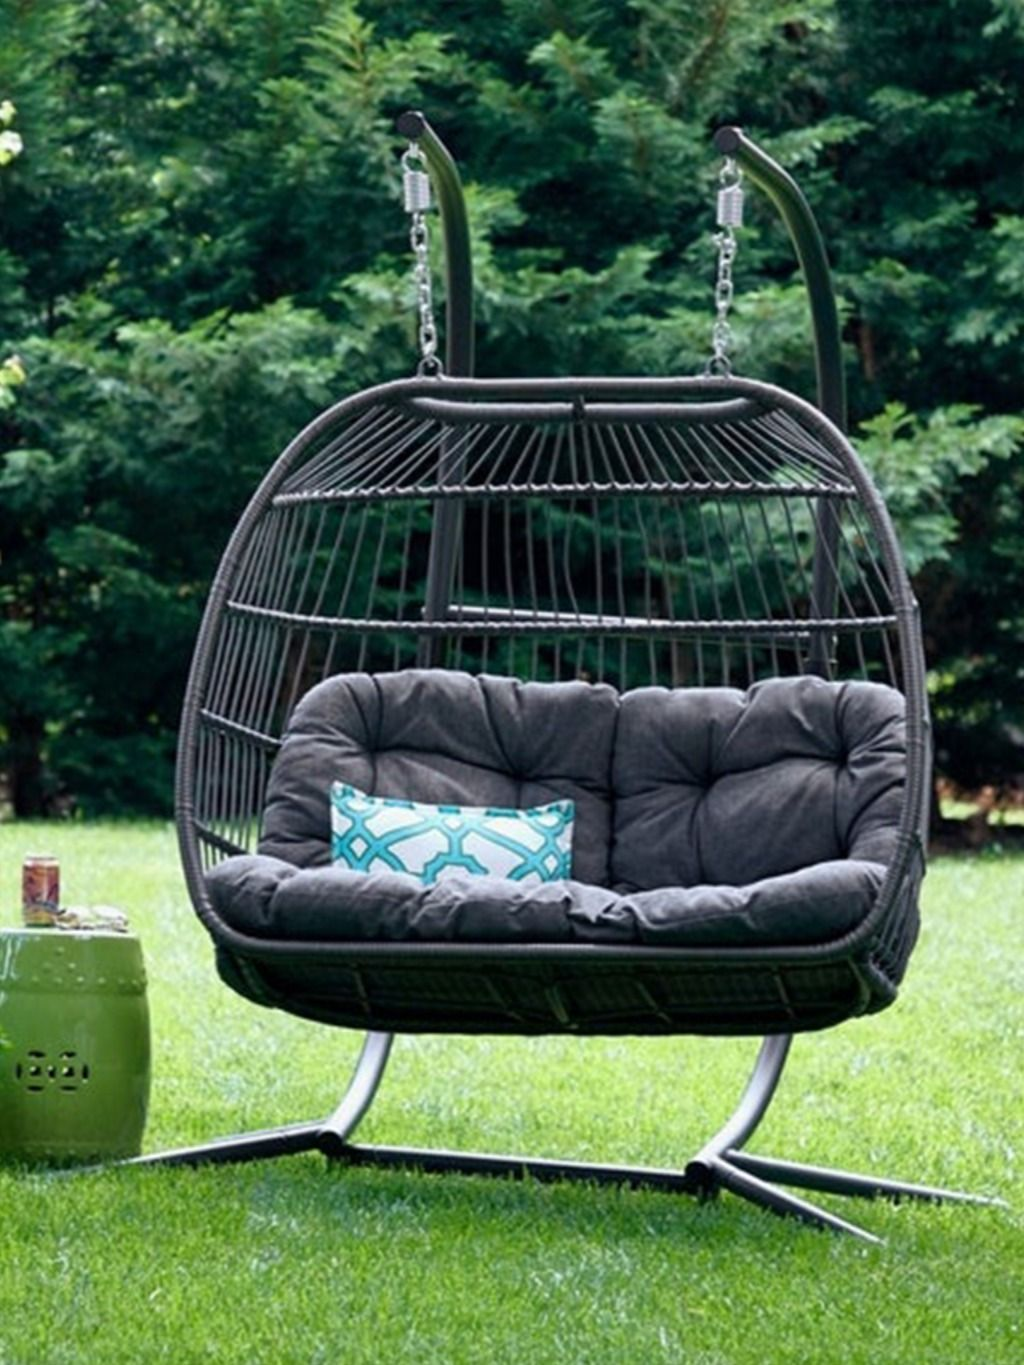 Luxury 2 Person Double Outdoor Patio Hanging Egg Swing Chair In 2020 Egg Swing Chair Patio Furniture Deals Hanging Chair